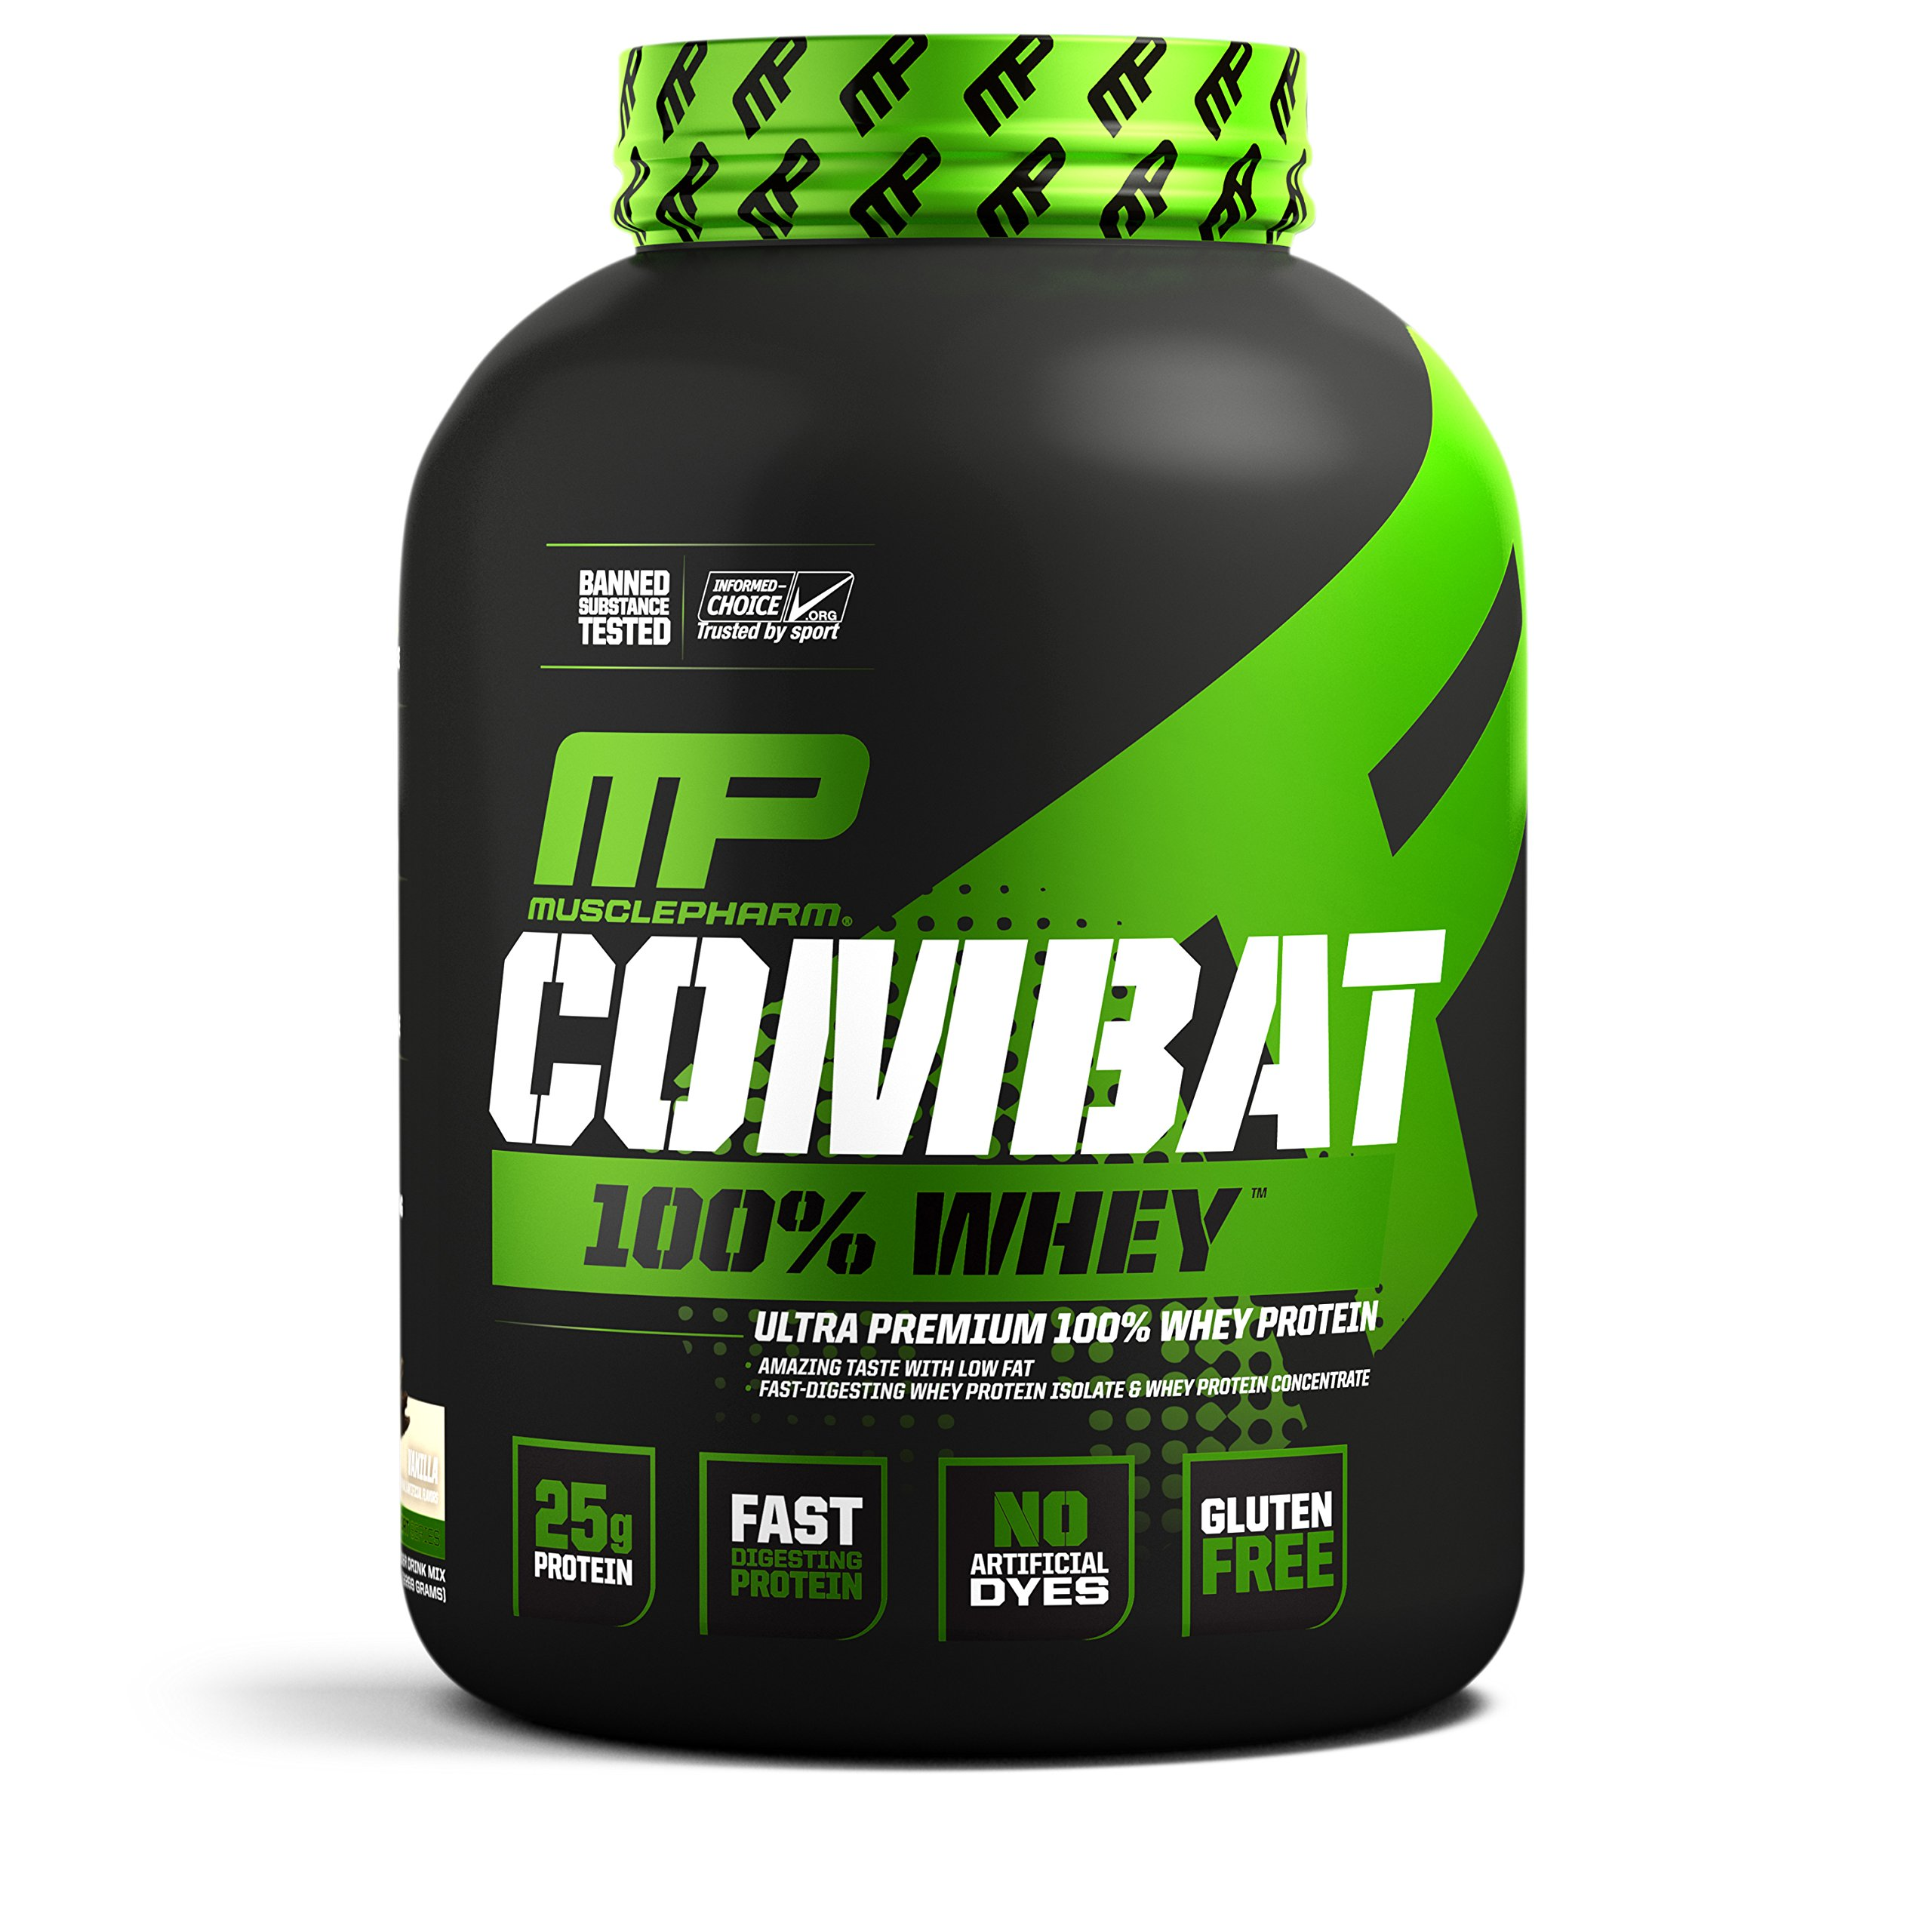 MusclePharm Combat 100% Whey, Muscle-Building Whey Protein Powder, 25 g of Ultra-Premium, Gluten-Free, Low-Fat Blend of Fast-Digesting Whey Protein, Vanilla, 5-Pound, 73 Servings by Muscle Pharm